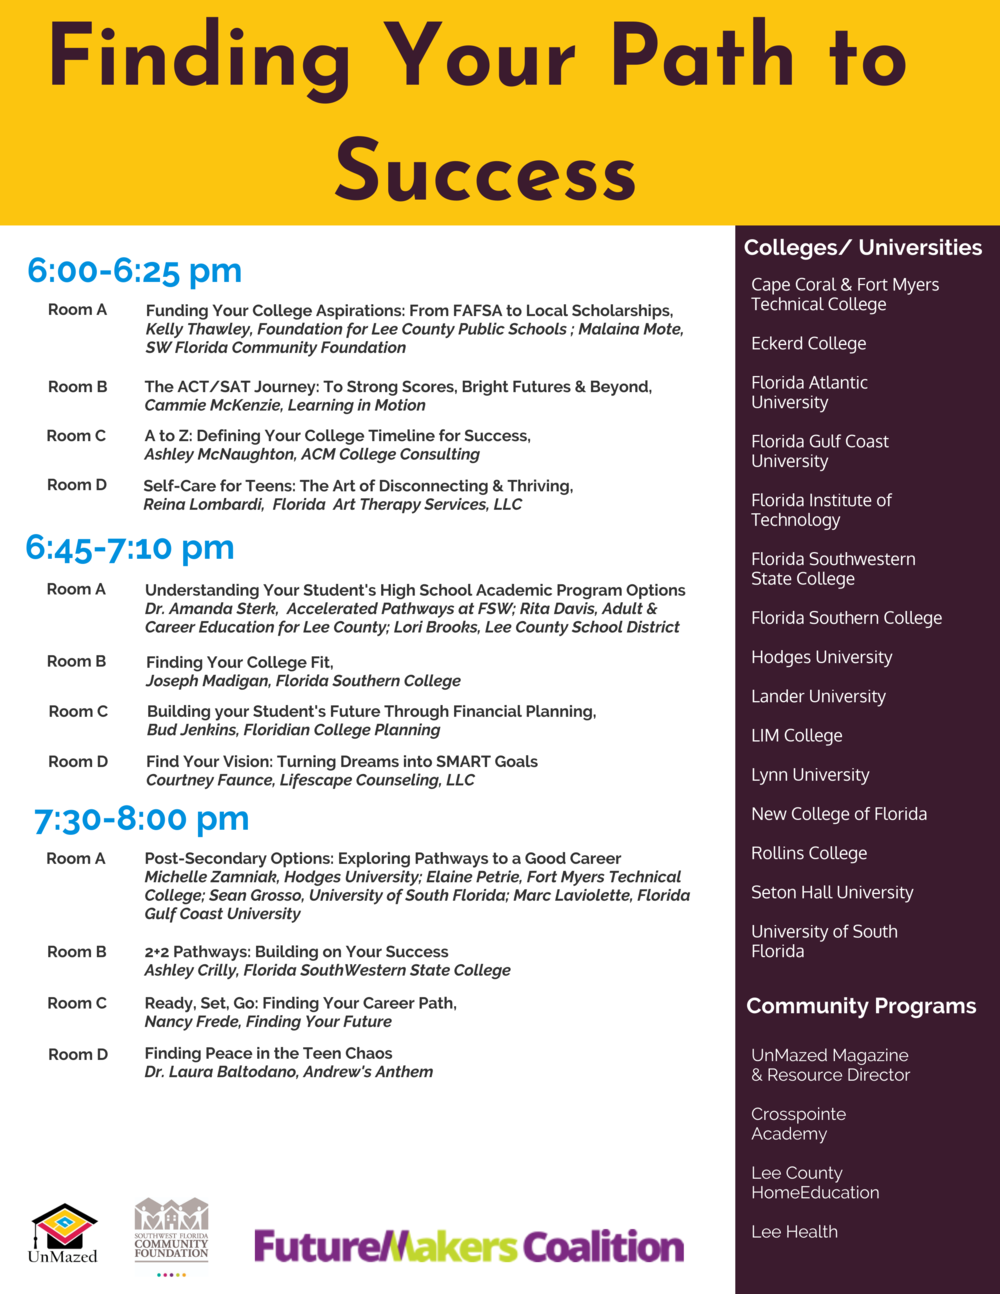 Finding Your Path To Success Agenda Handout.png